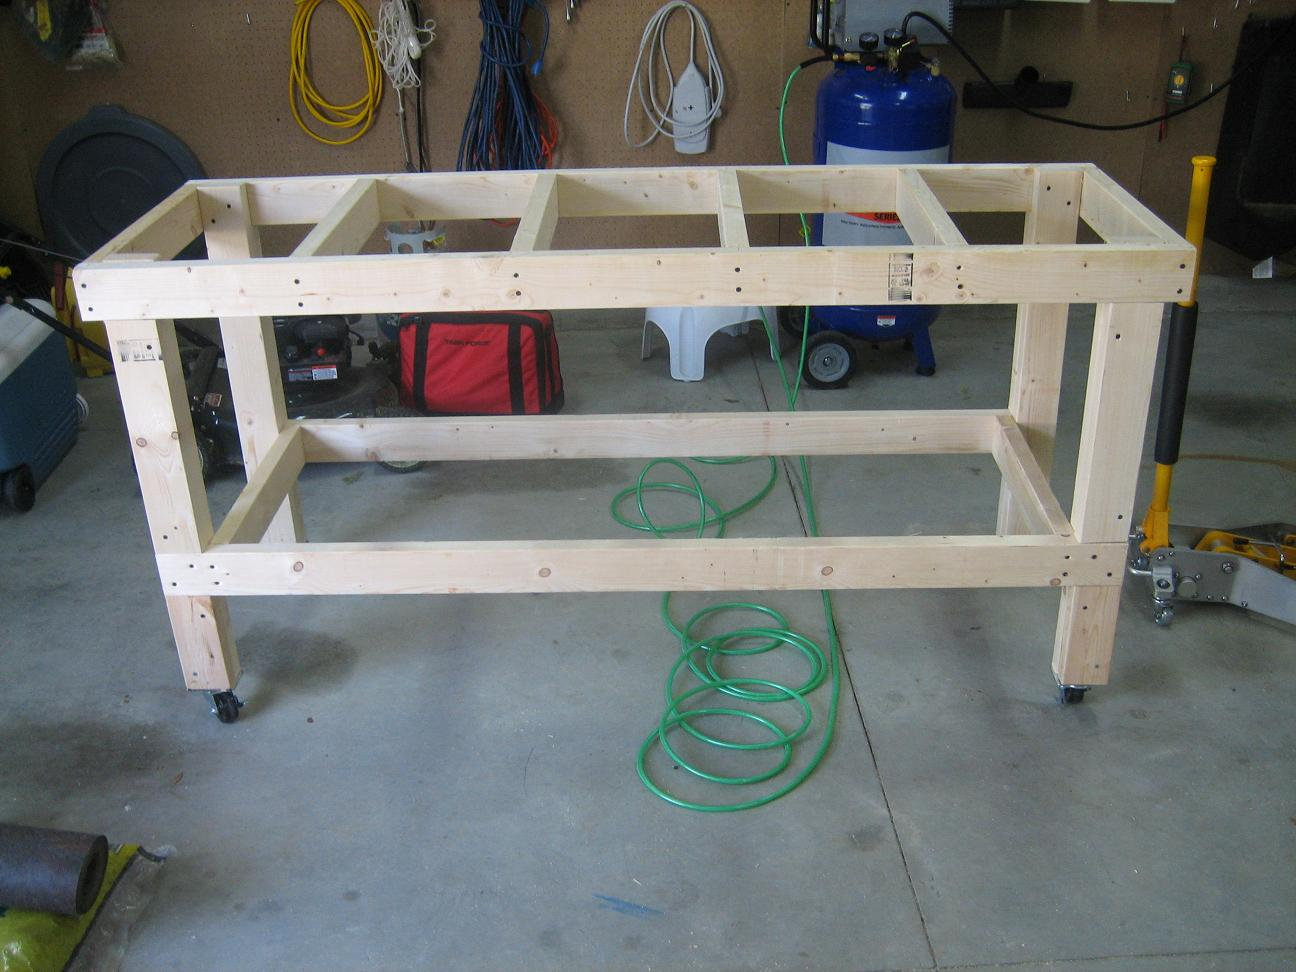 Eaa workbench completed andrew 39 s rv 7 build log for Build your garage online